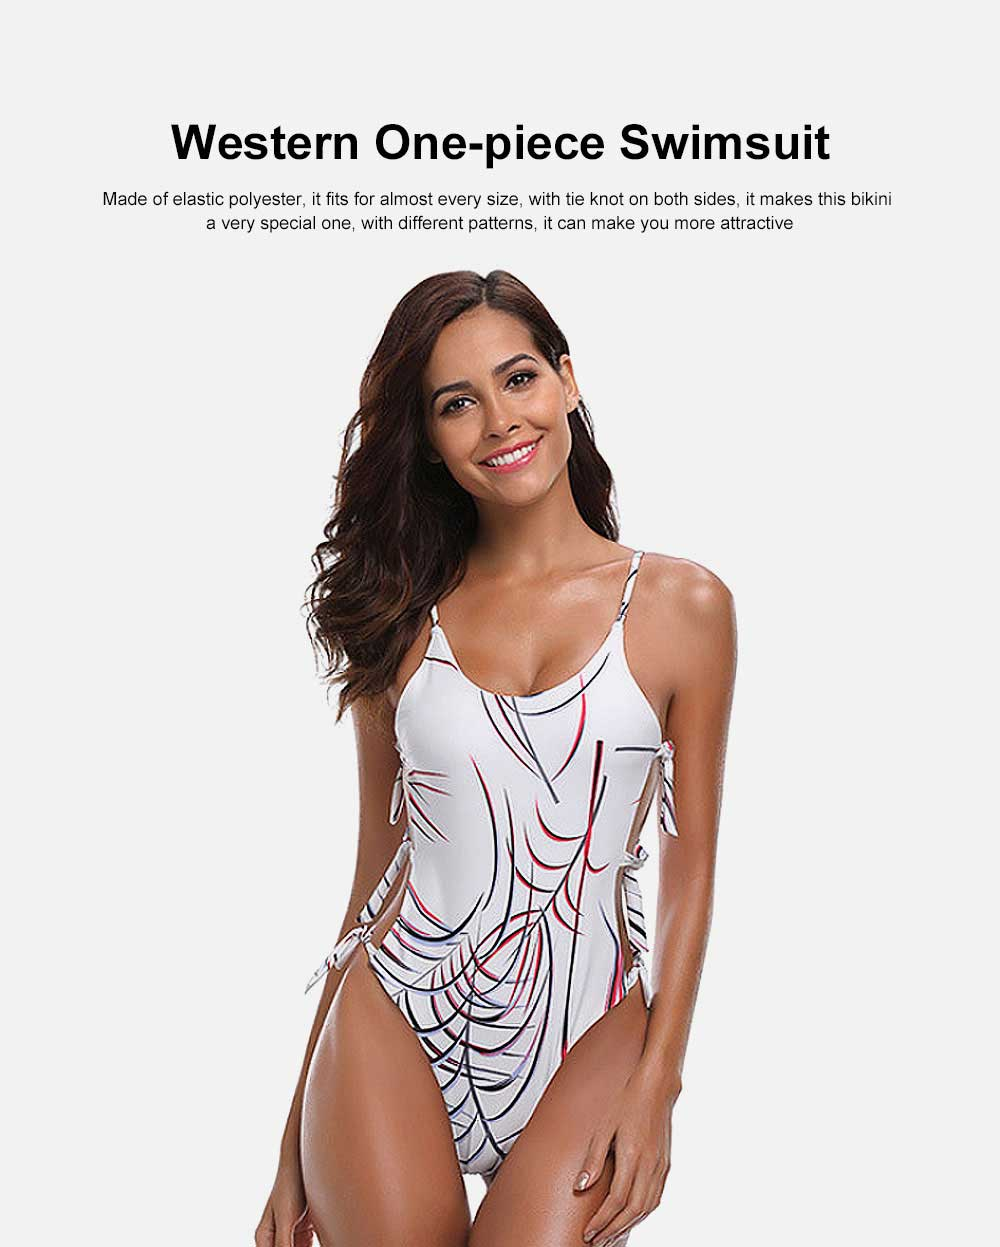 New Western One-piece Swimsuit Sexy Bikini with Special Tie Knot for Beach Swimming Pool 0